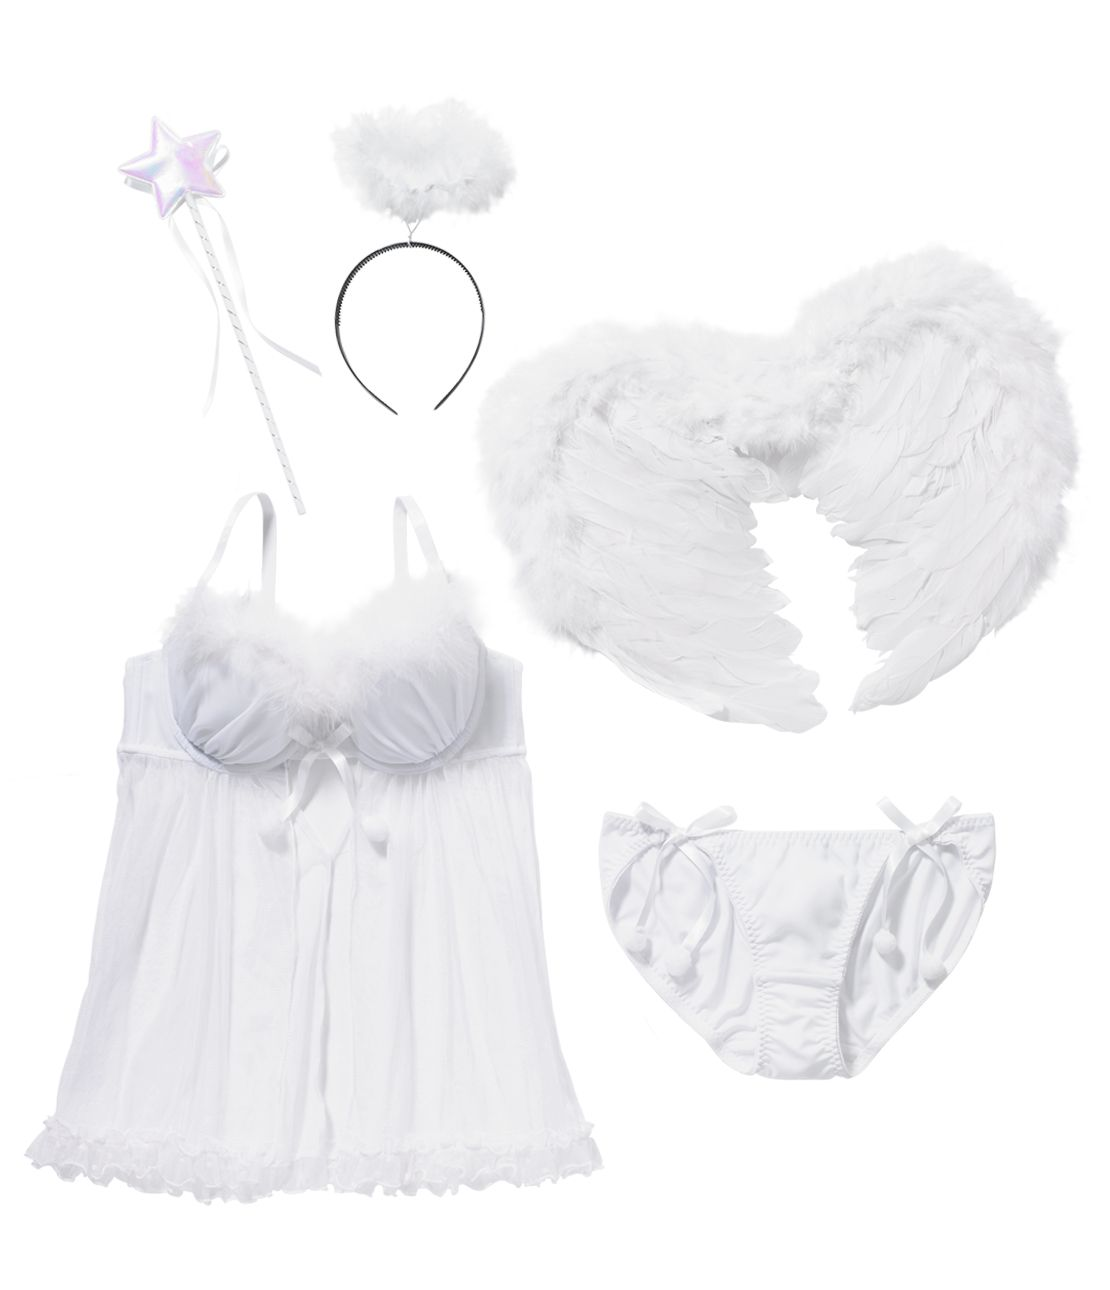 YM Angel Bra Set